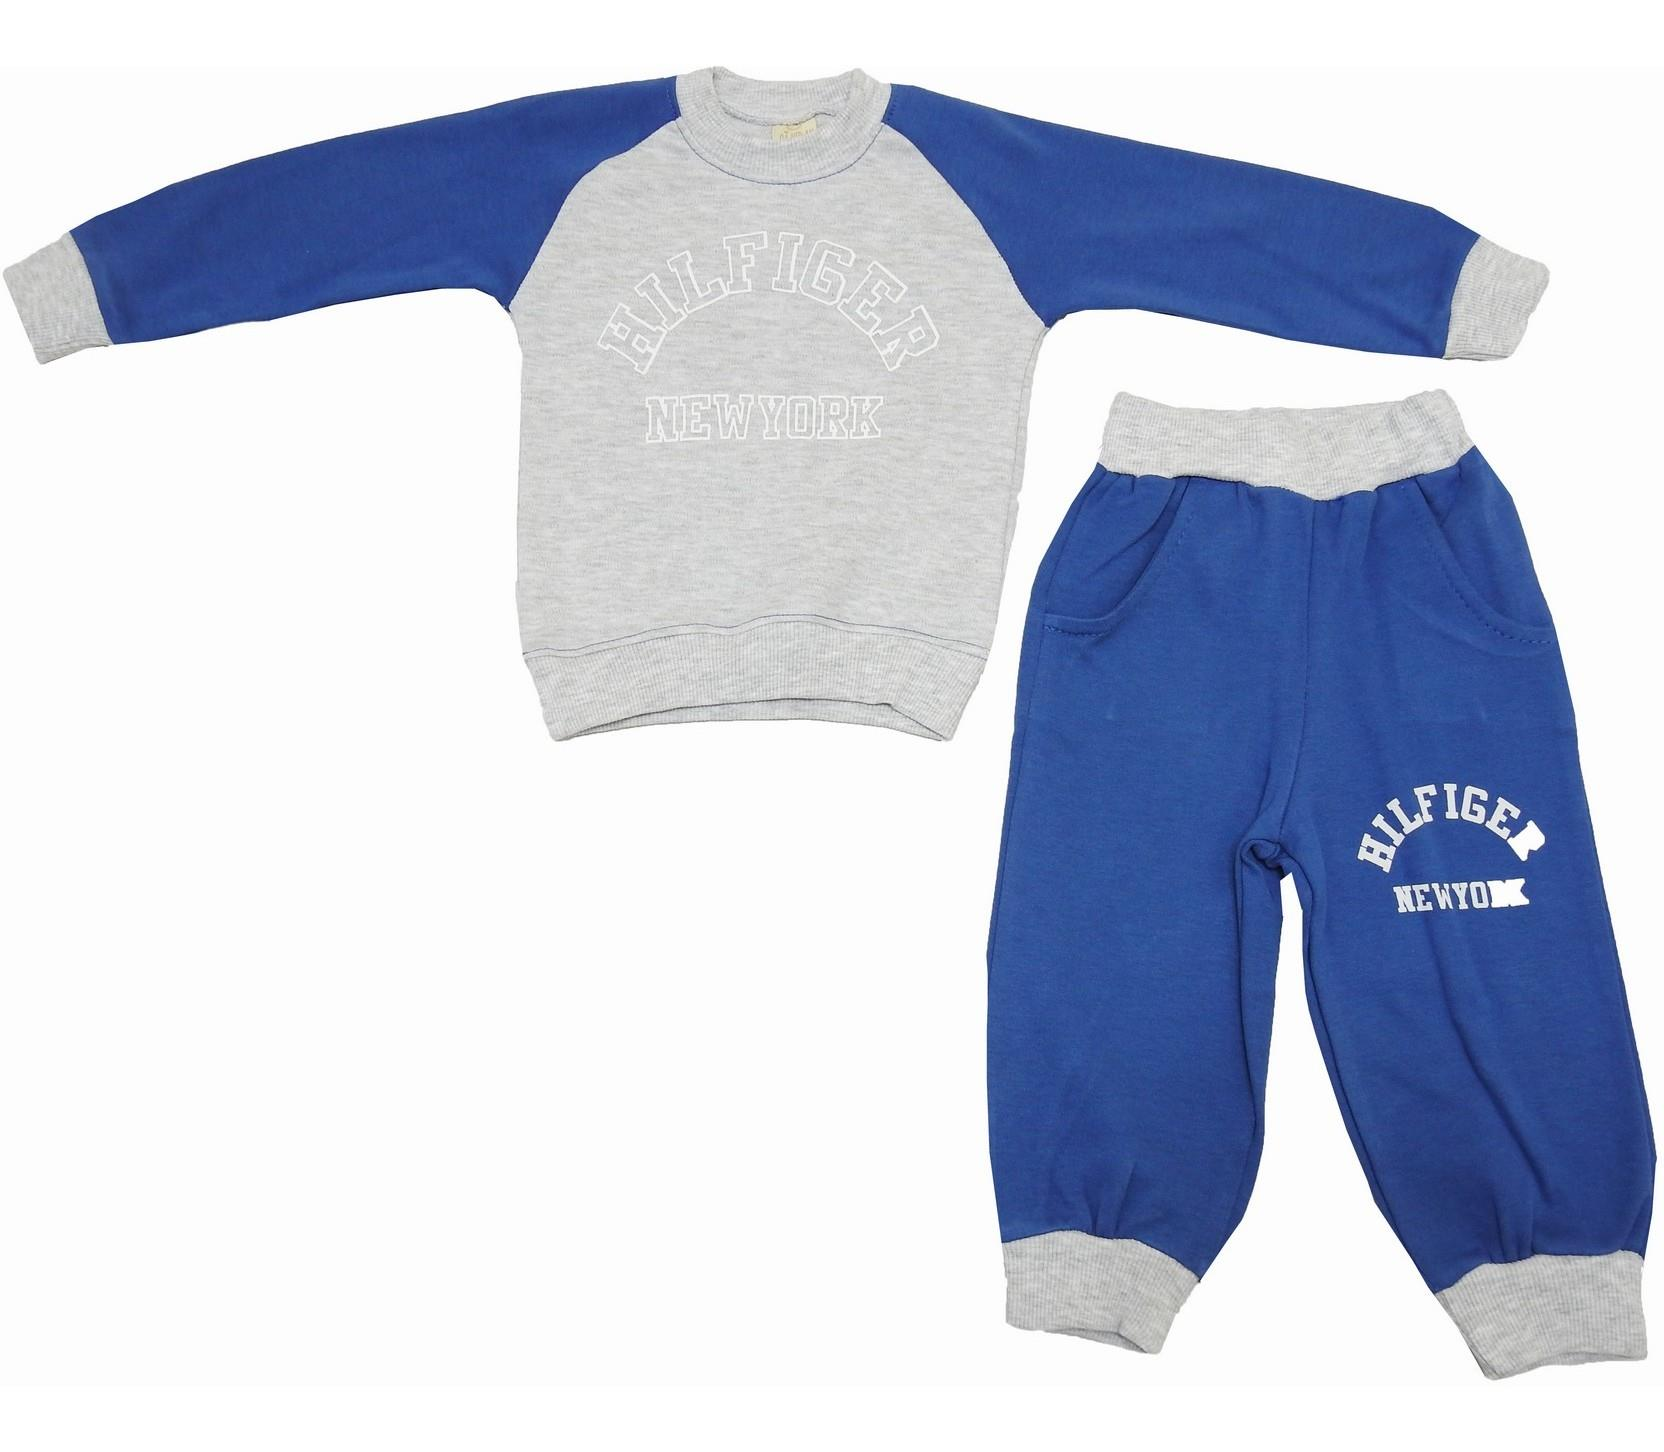 HILFIGHER NEWYORK PRINTED DOUBLE SET FOR BOY (1-2-3 AGE)